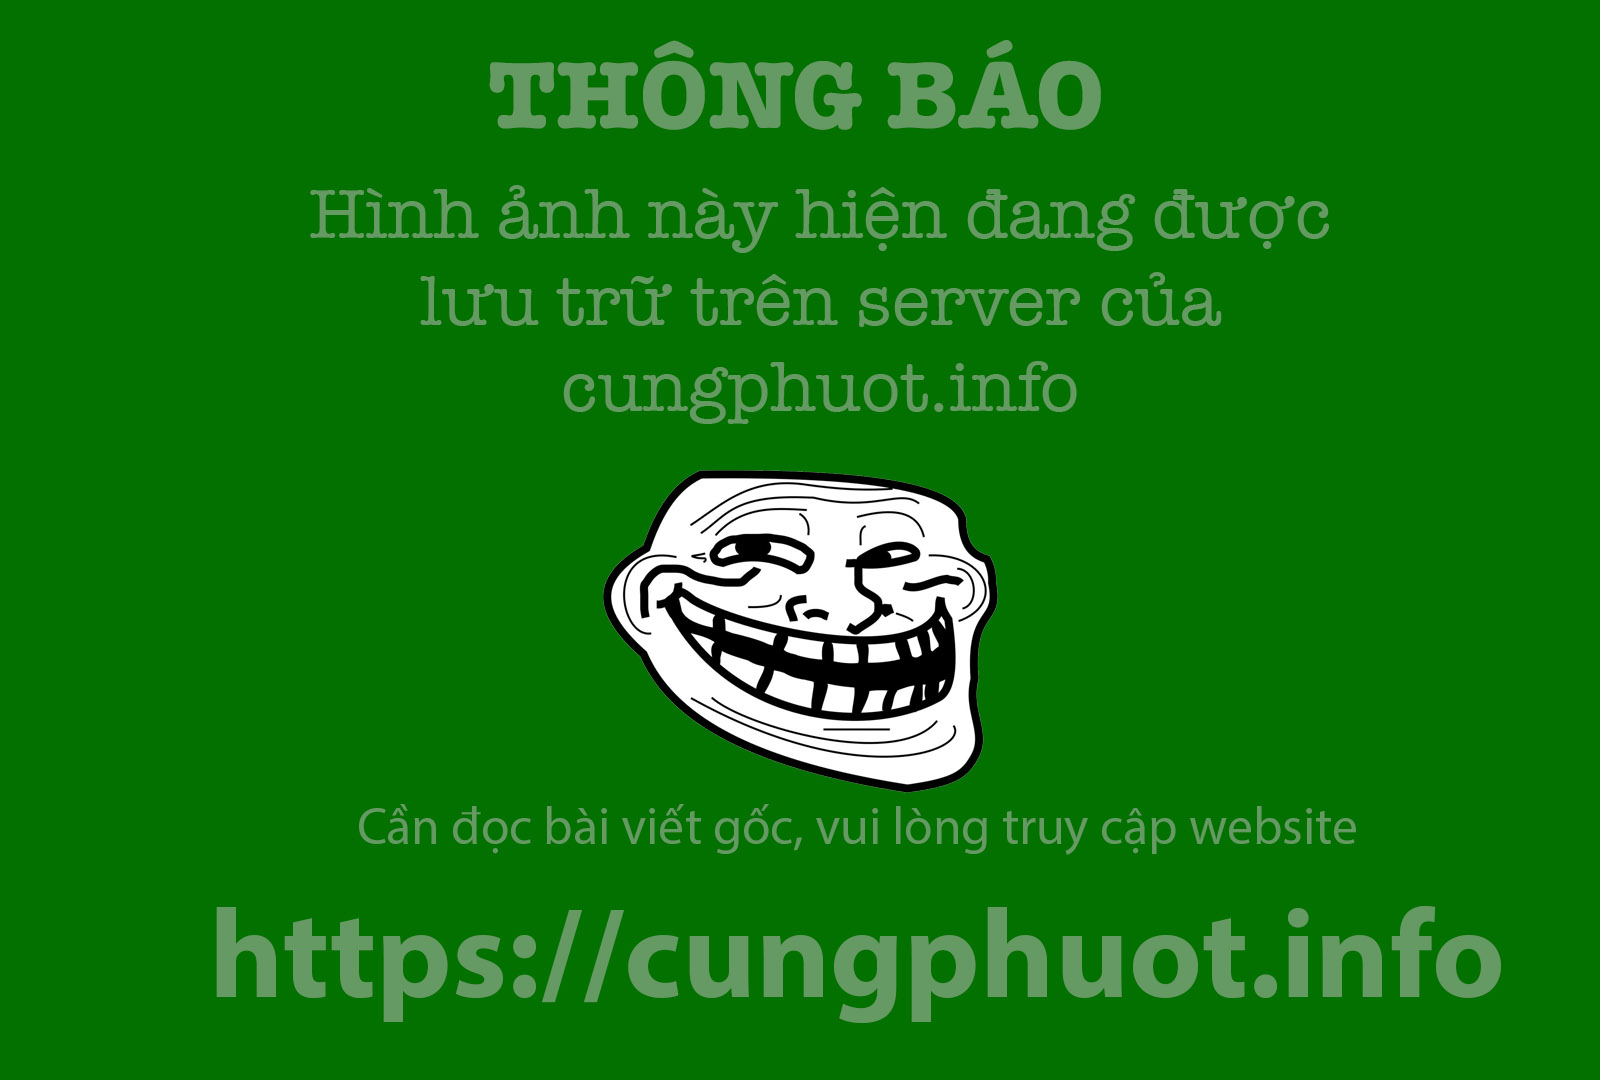 Mien Tay mua nuoc noi di mai chang het diem check-in hinh anh 10